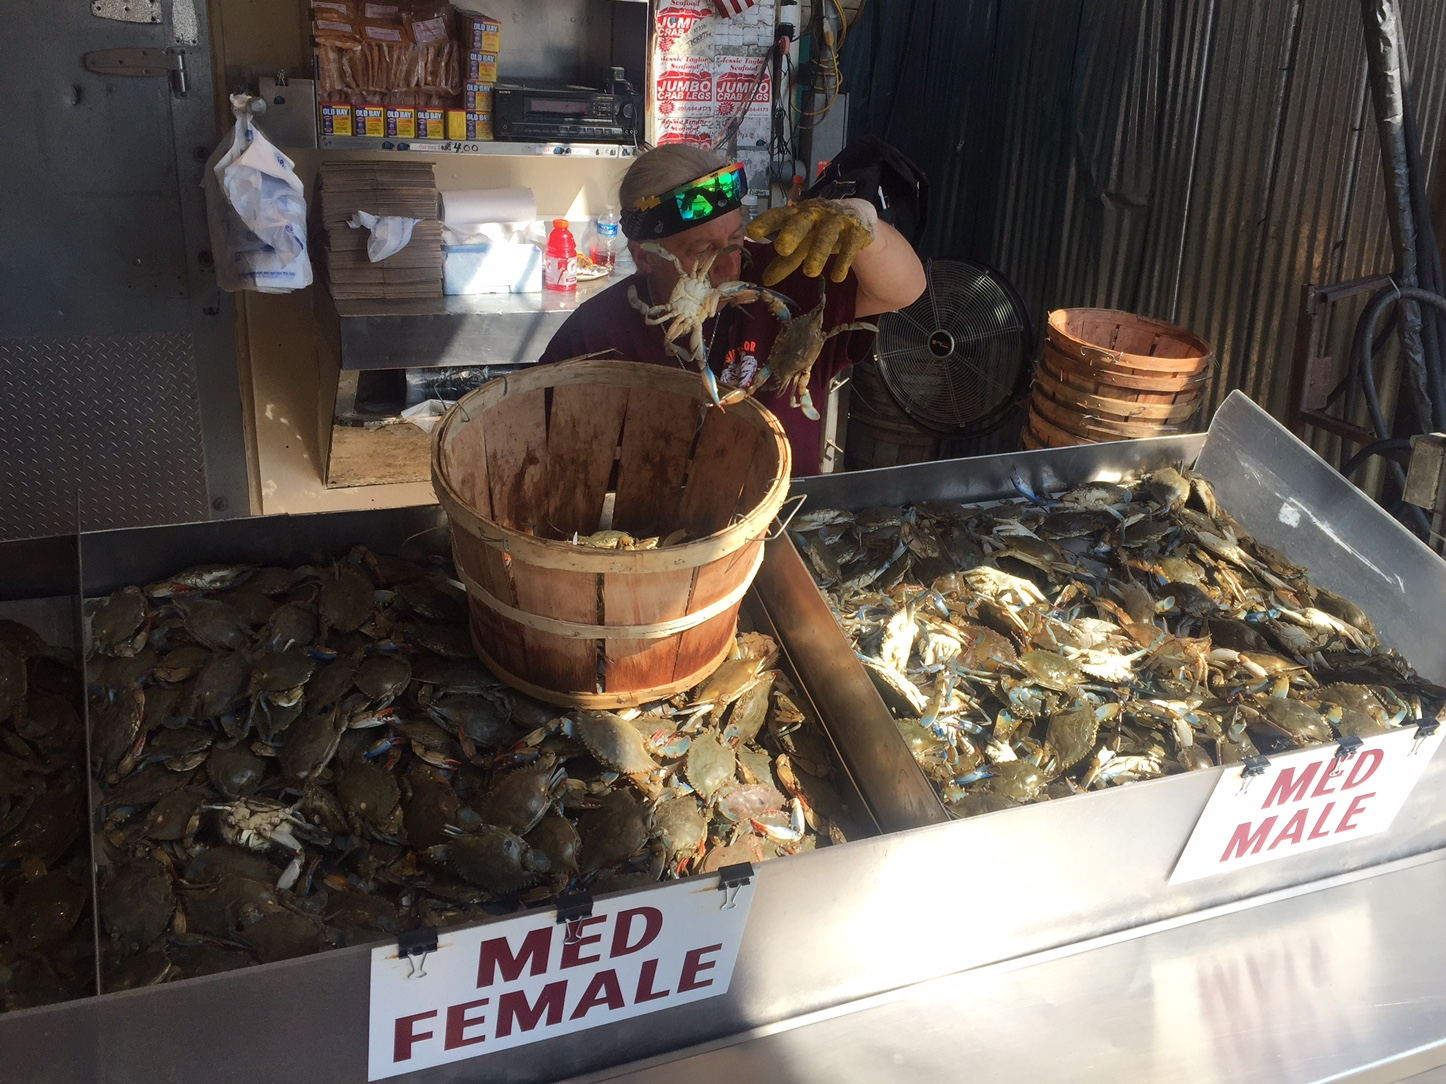 The competition for out-of-state crabs has kept prices up, with a half bushel coating $60 as of Friday morning. (WTOP/John Aaron)